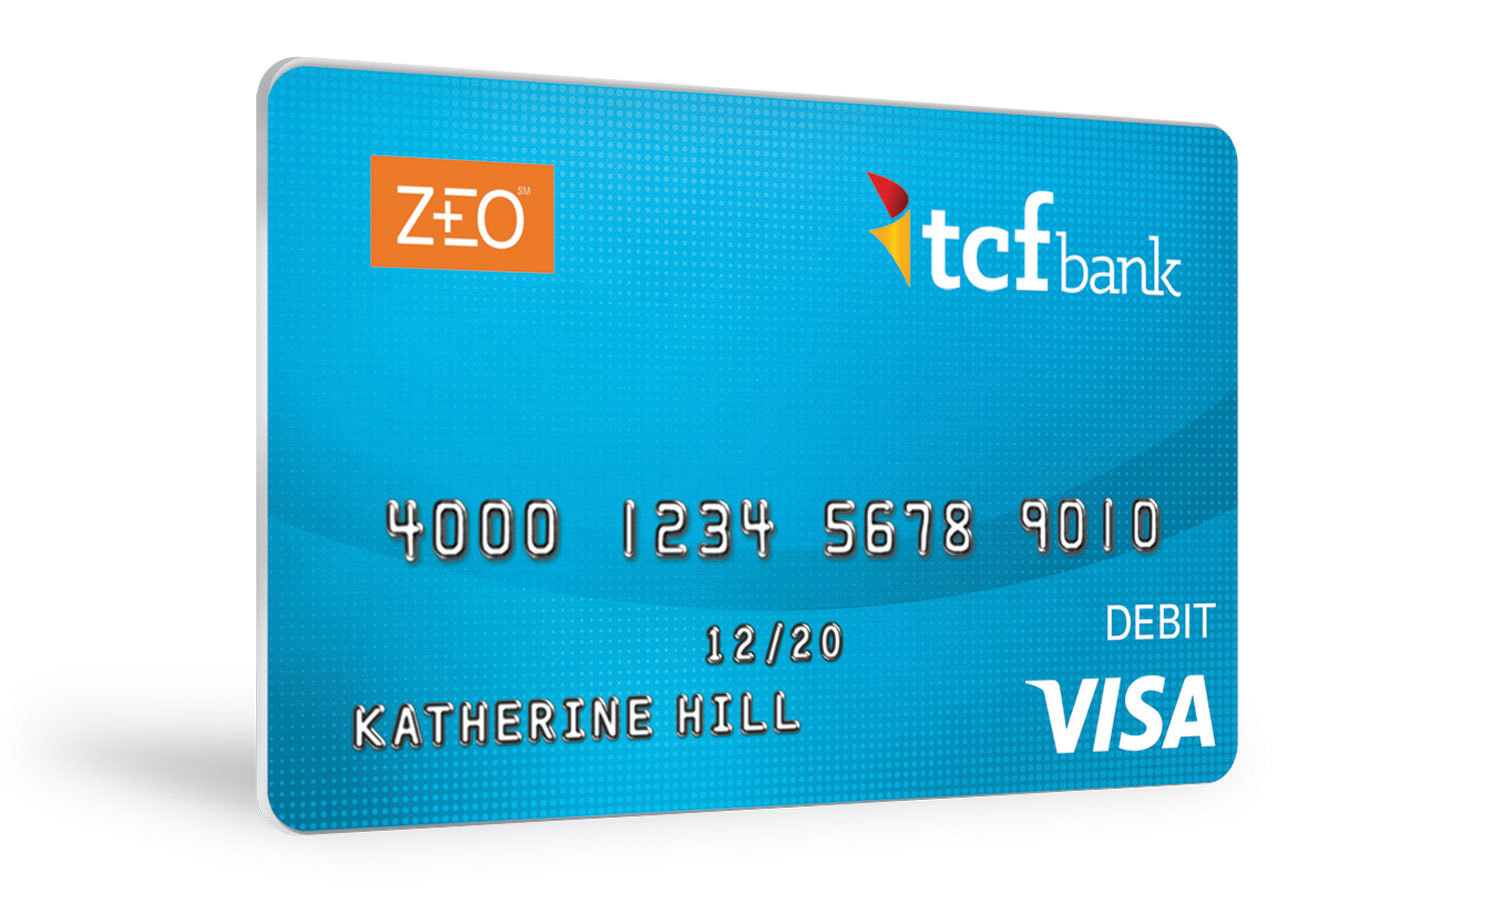 Prepaid business debit card business card design inspiration for Business prepaid credit card